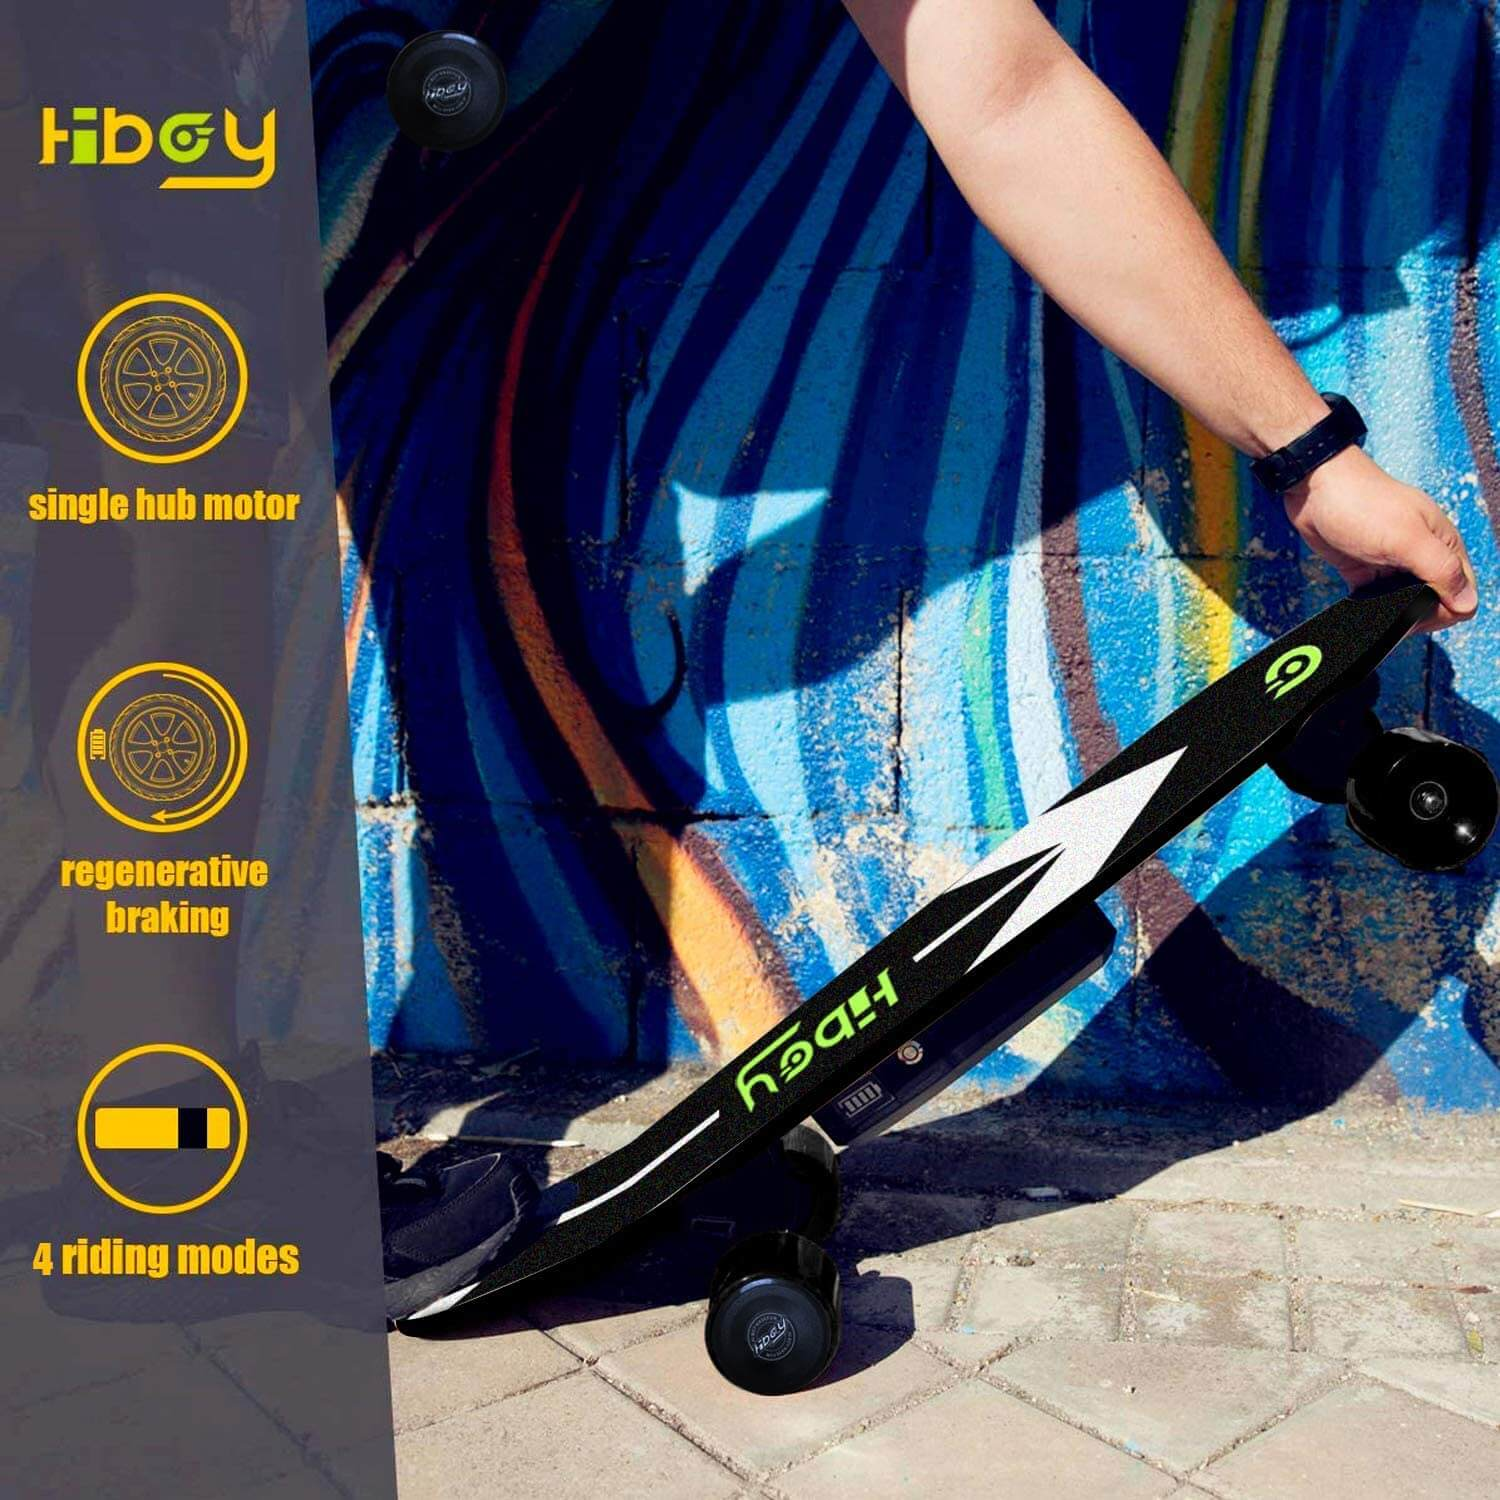 Hiboy S11 Electric Skateboard